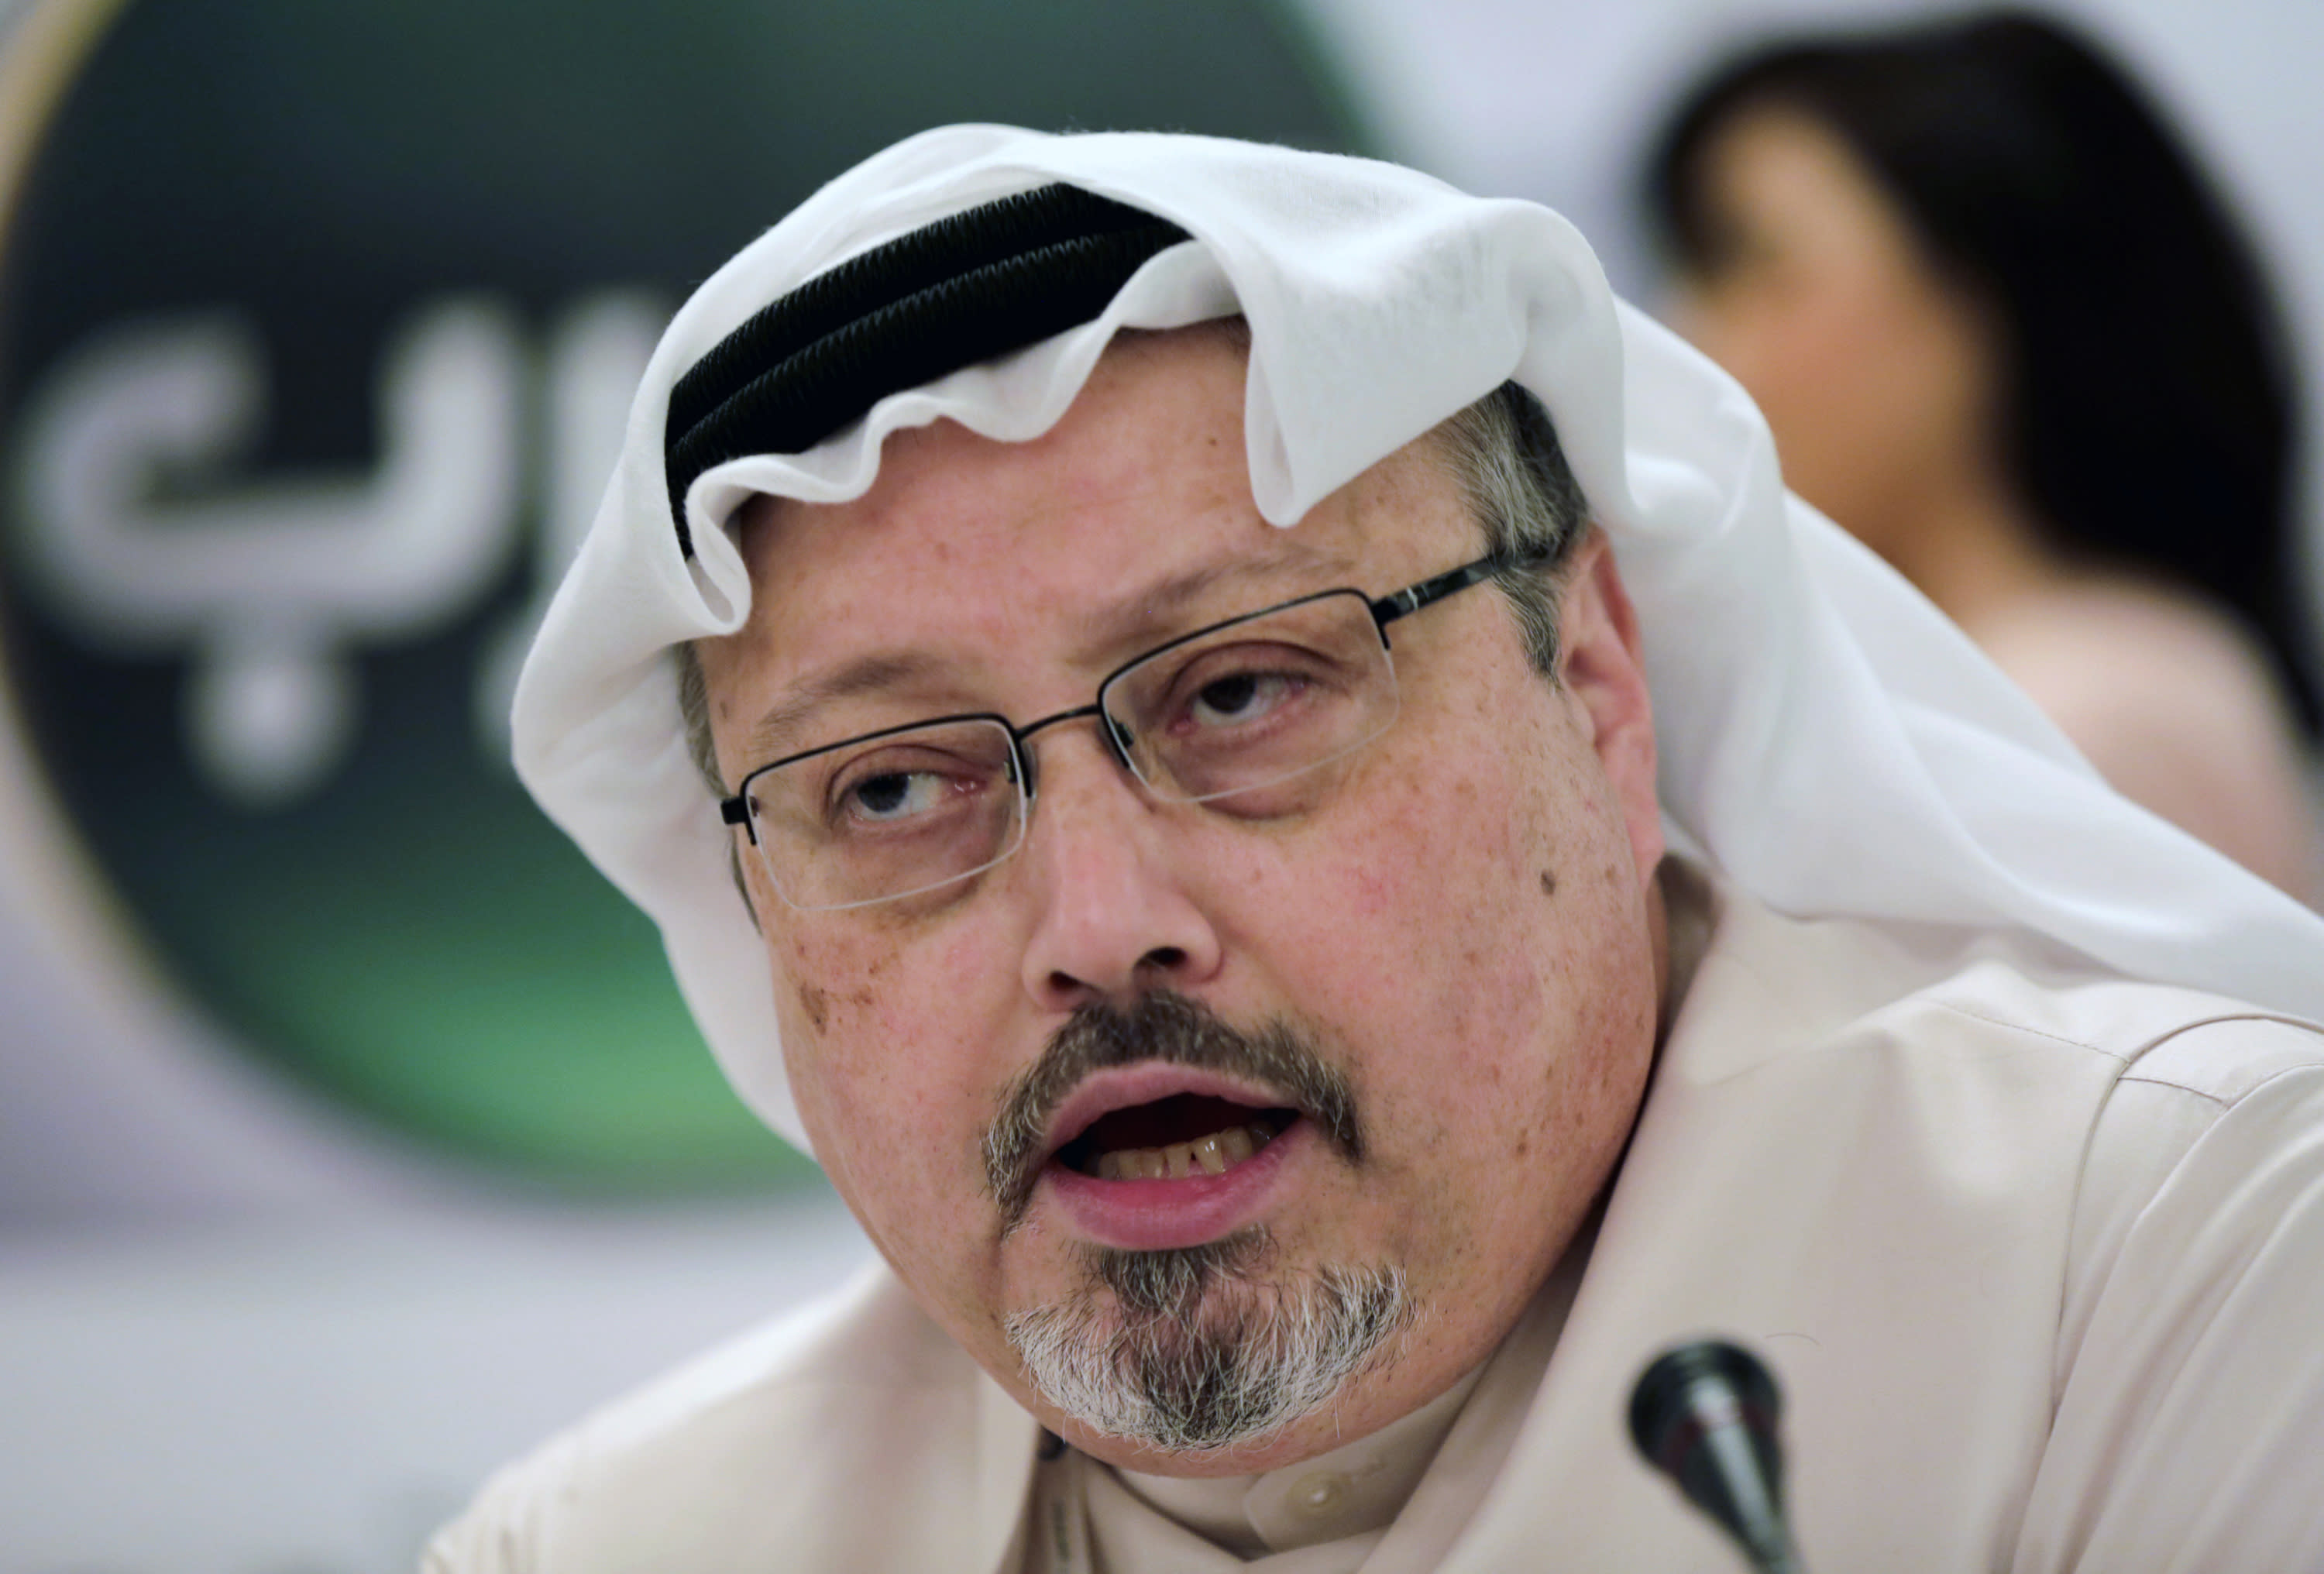 Turkey to keep up efforts to shed light on Khashoggi killing